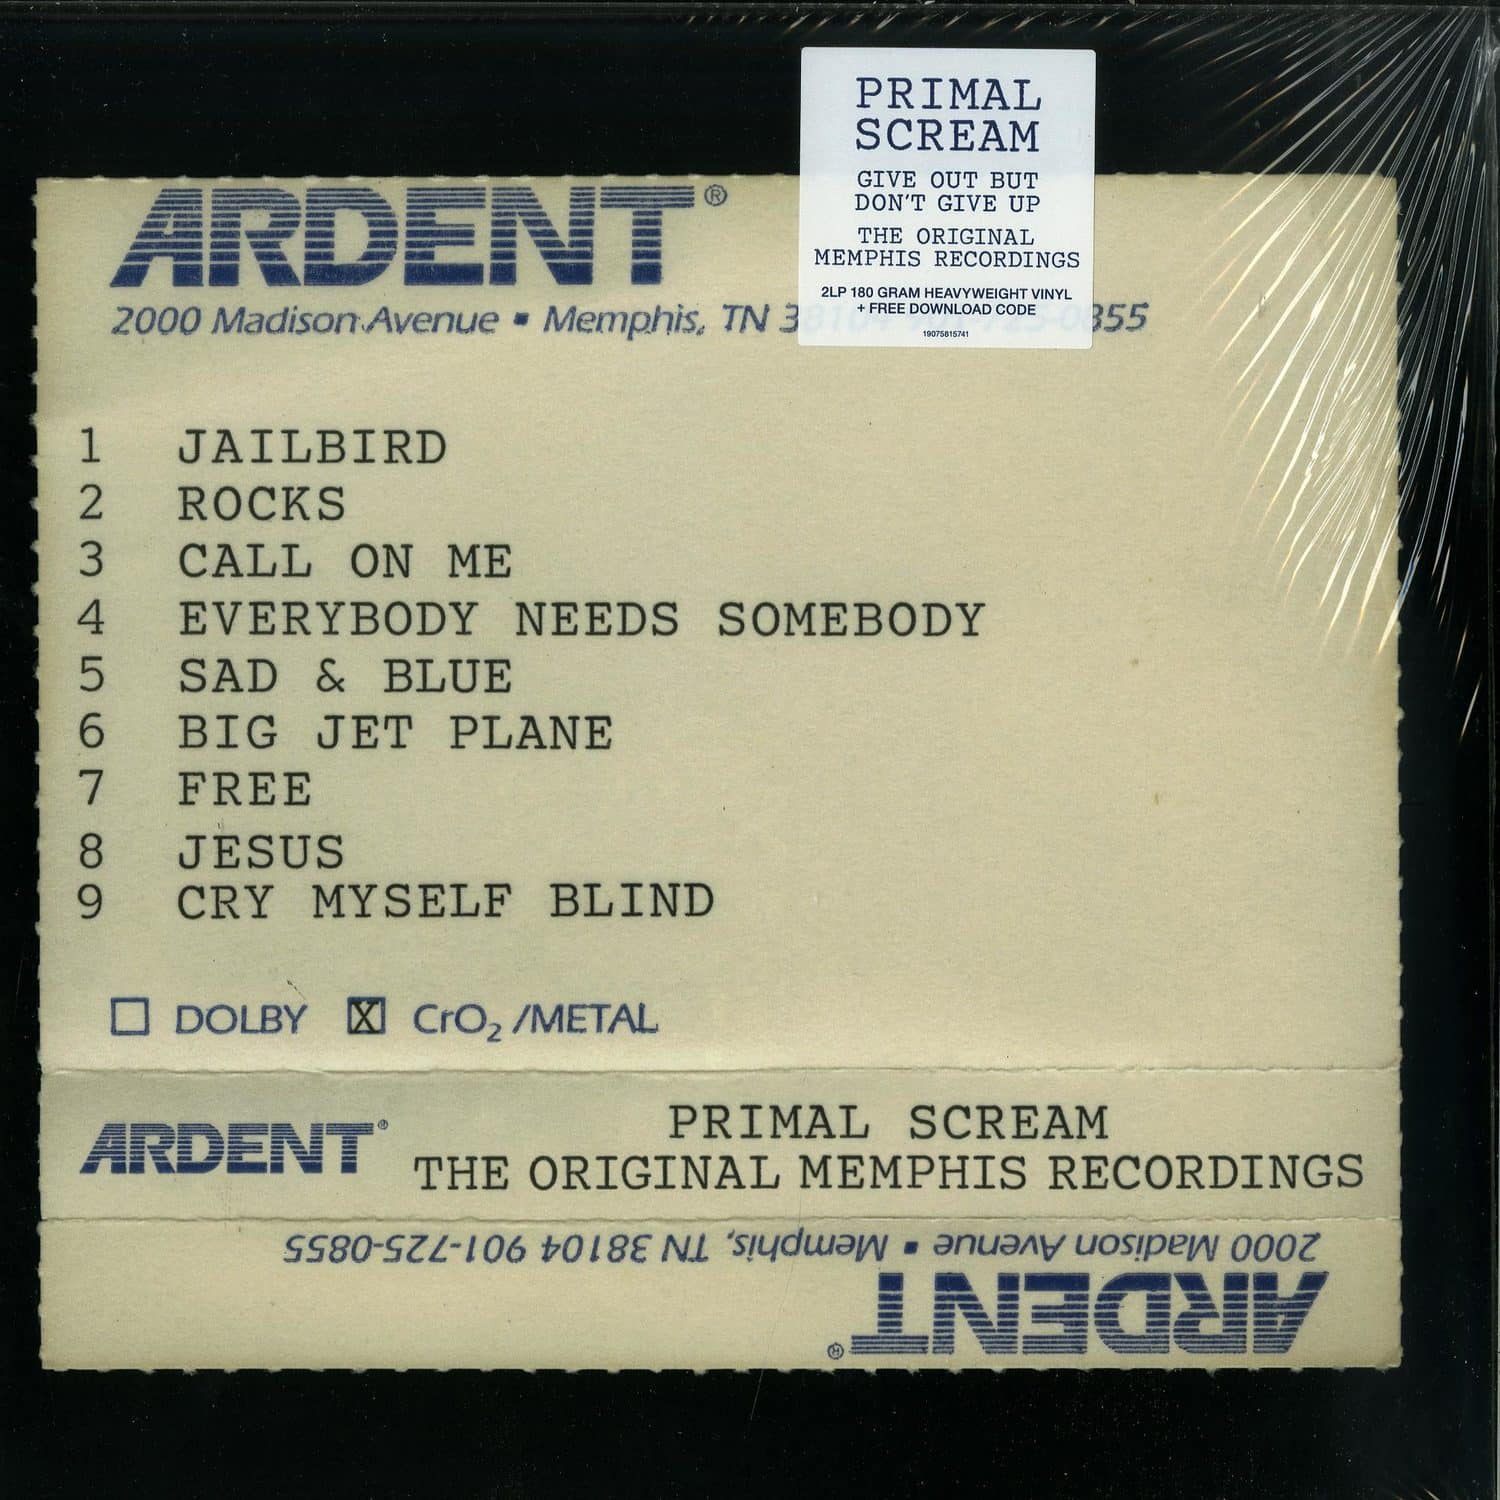 Primal Scream - GIVE OUT BUT DONT GIVE UP